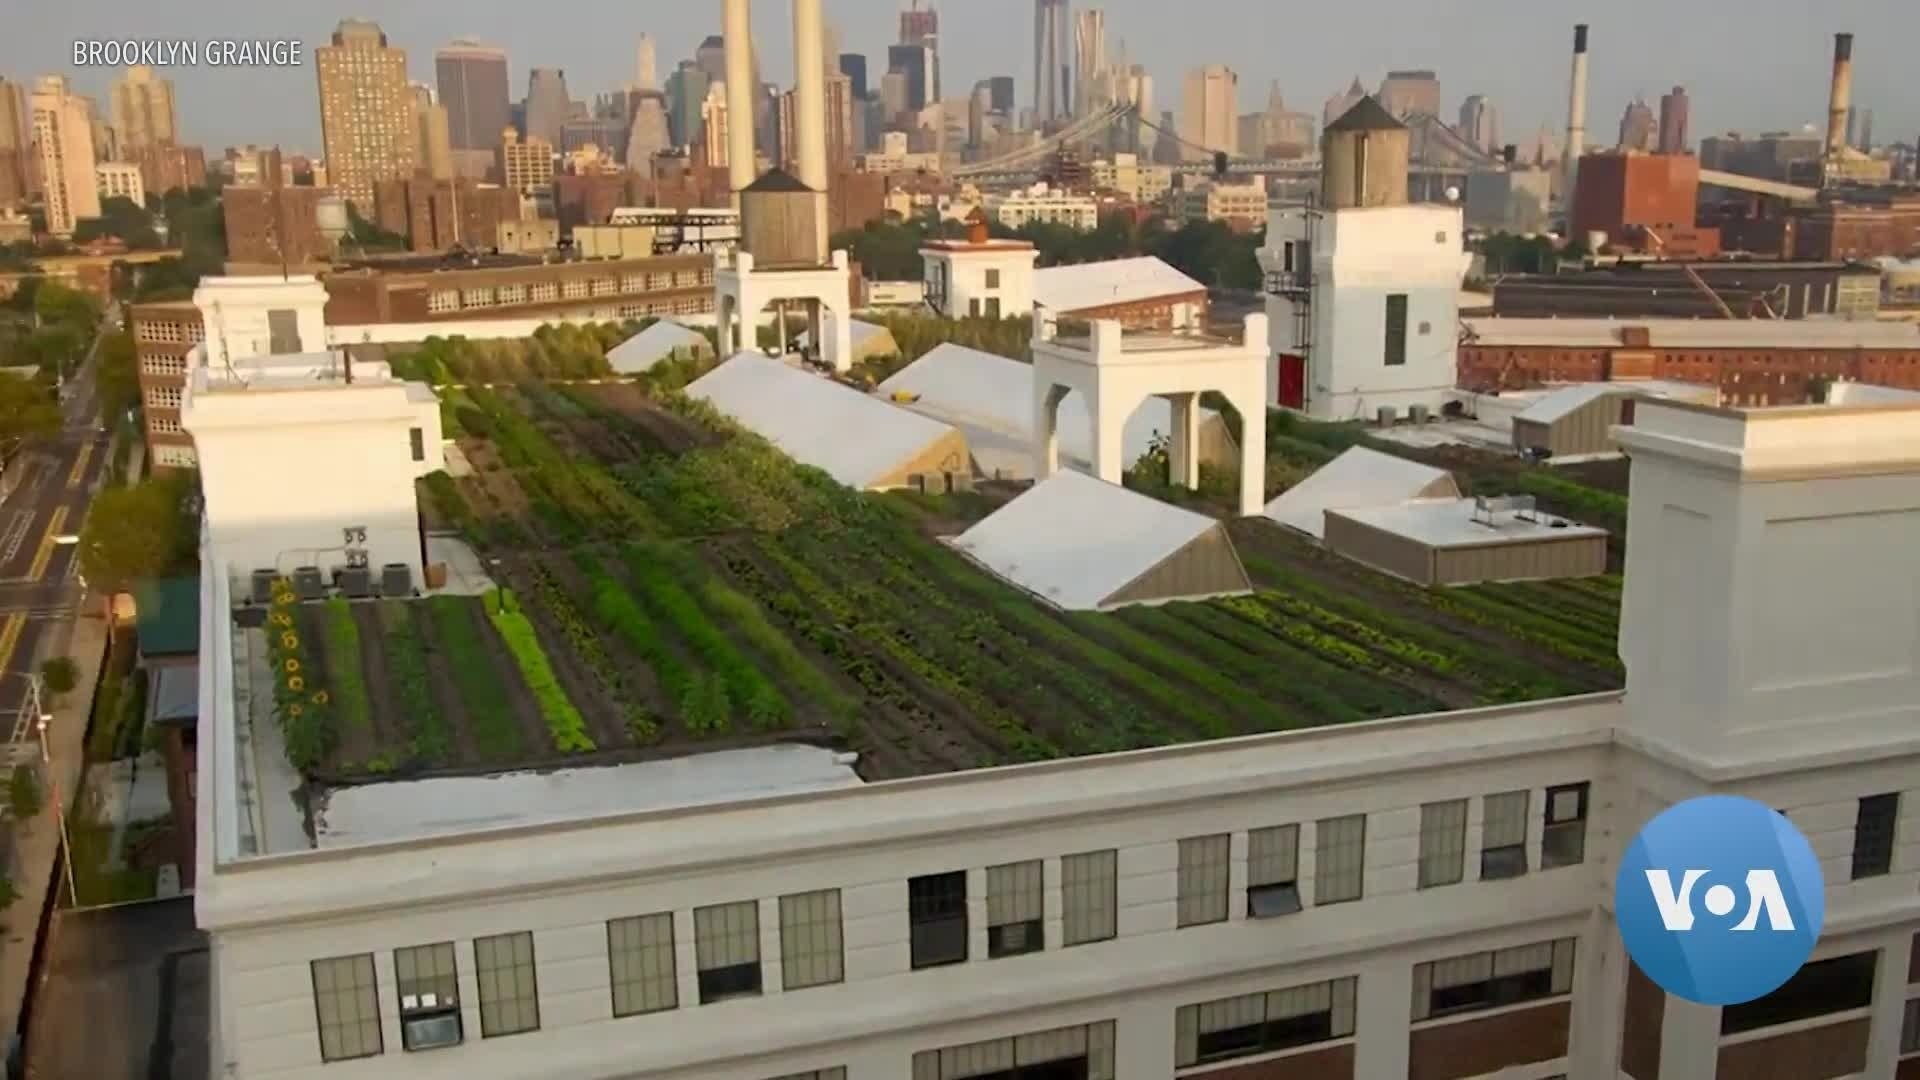 Worried About Food Supply, New Yorkers Grow Gardens